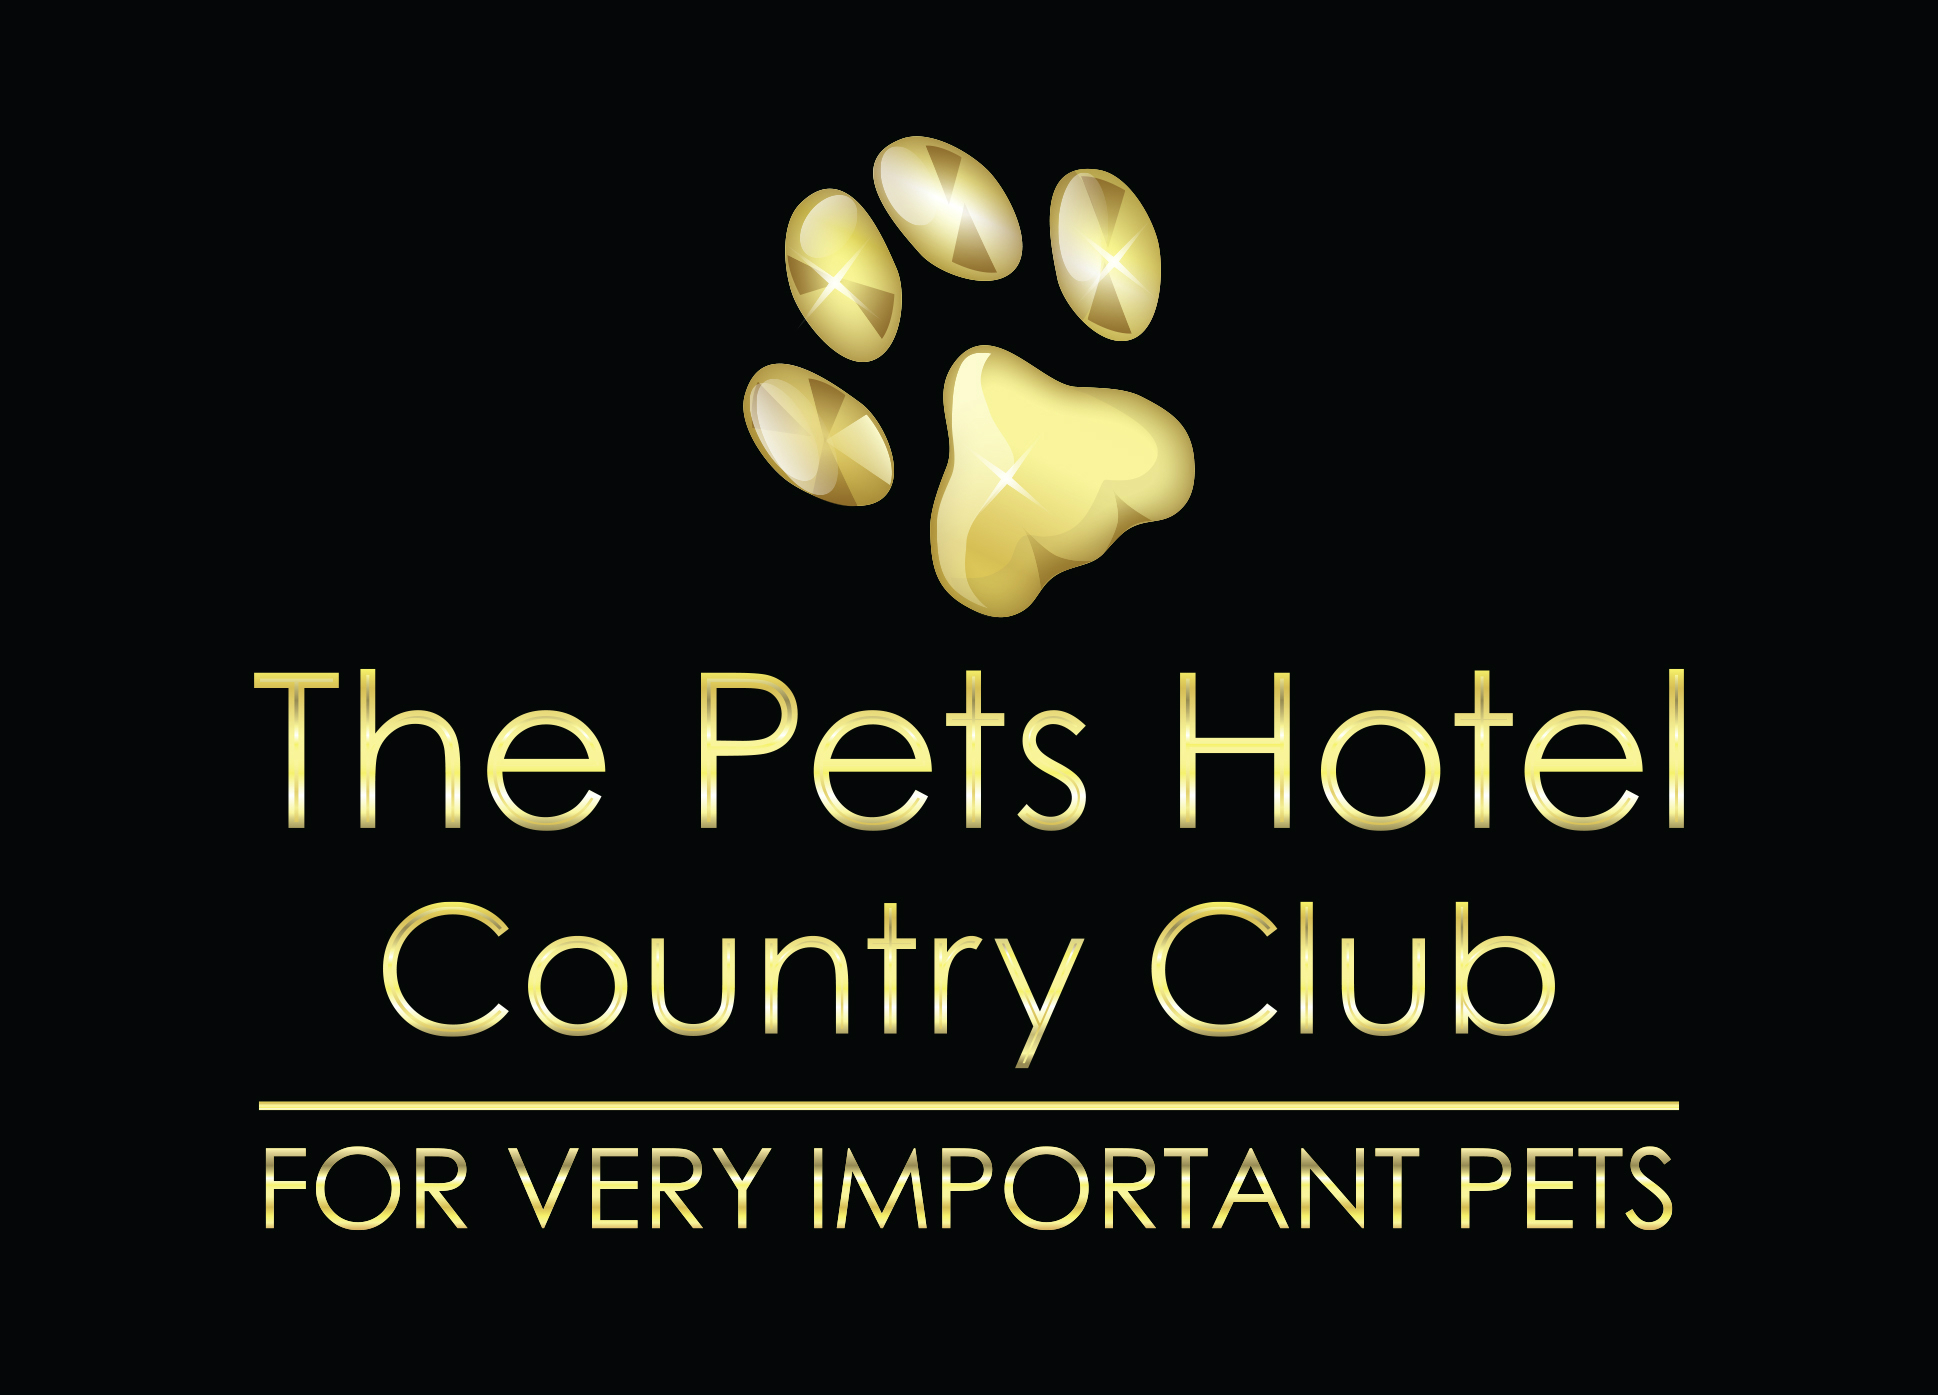 Pets Hotel Country Club Black and Gold low res